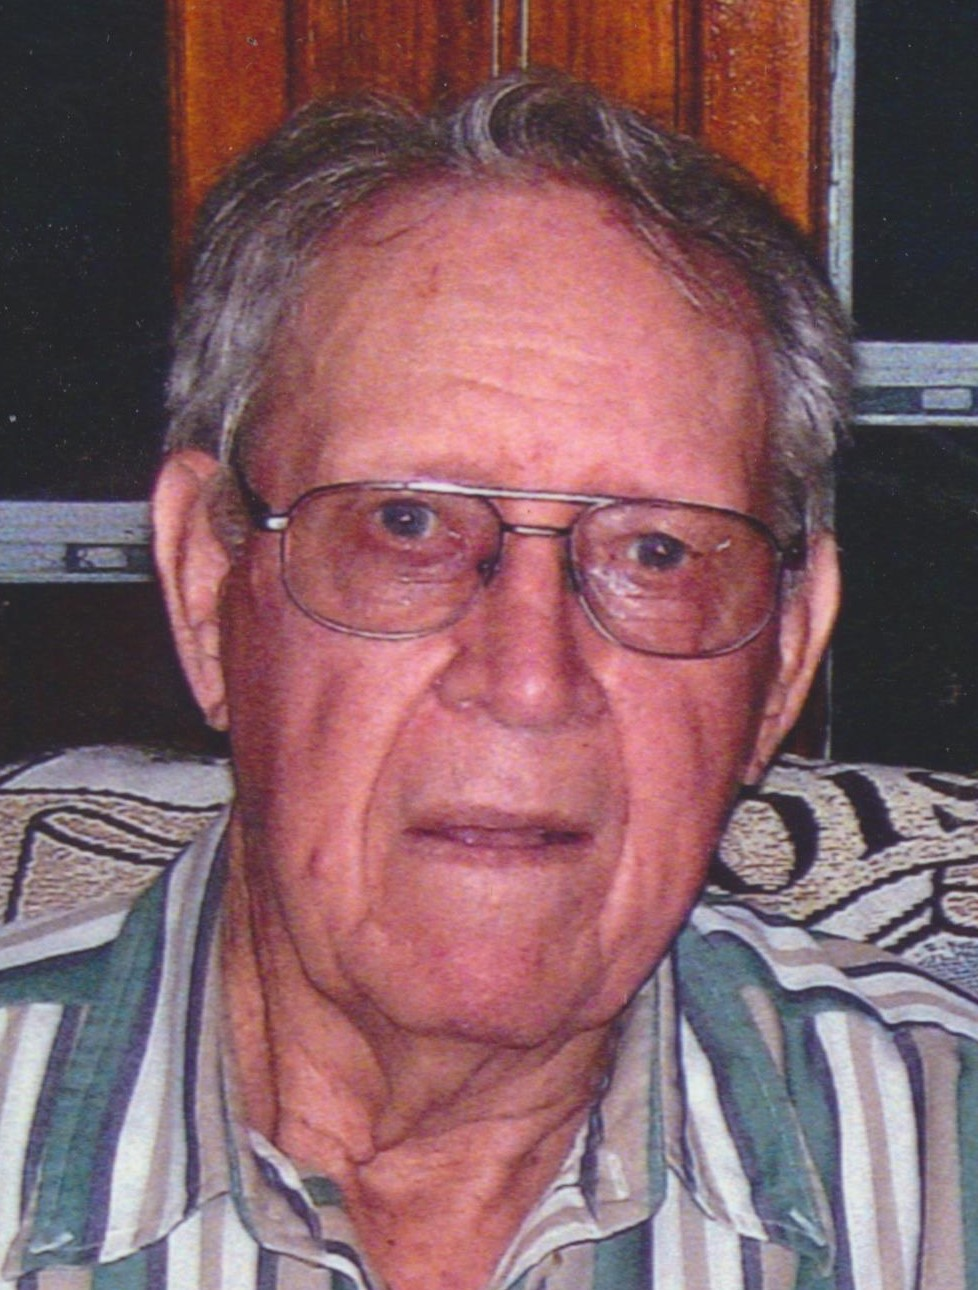 Obituary for jerald jd d mcalister send flowers fippinger obituary for jerald jd d mcalister send flowers fippinger funeral home izmirmasajfo